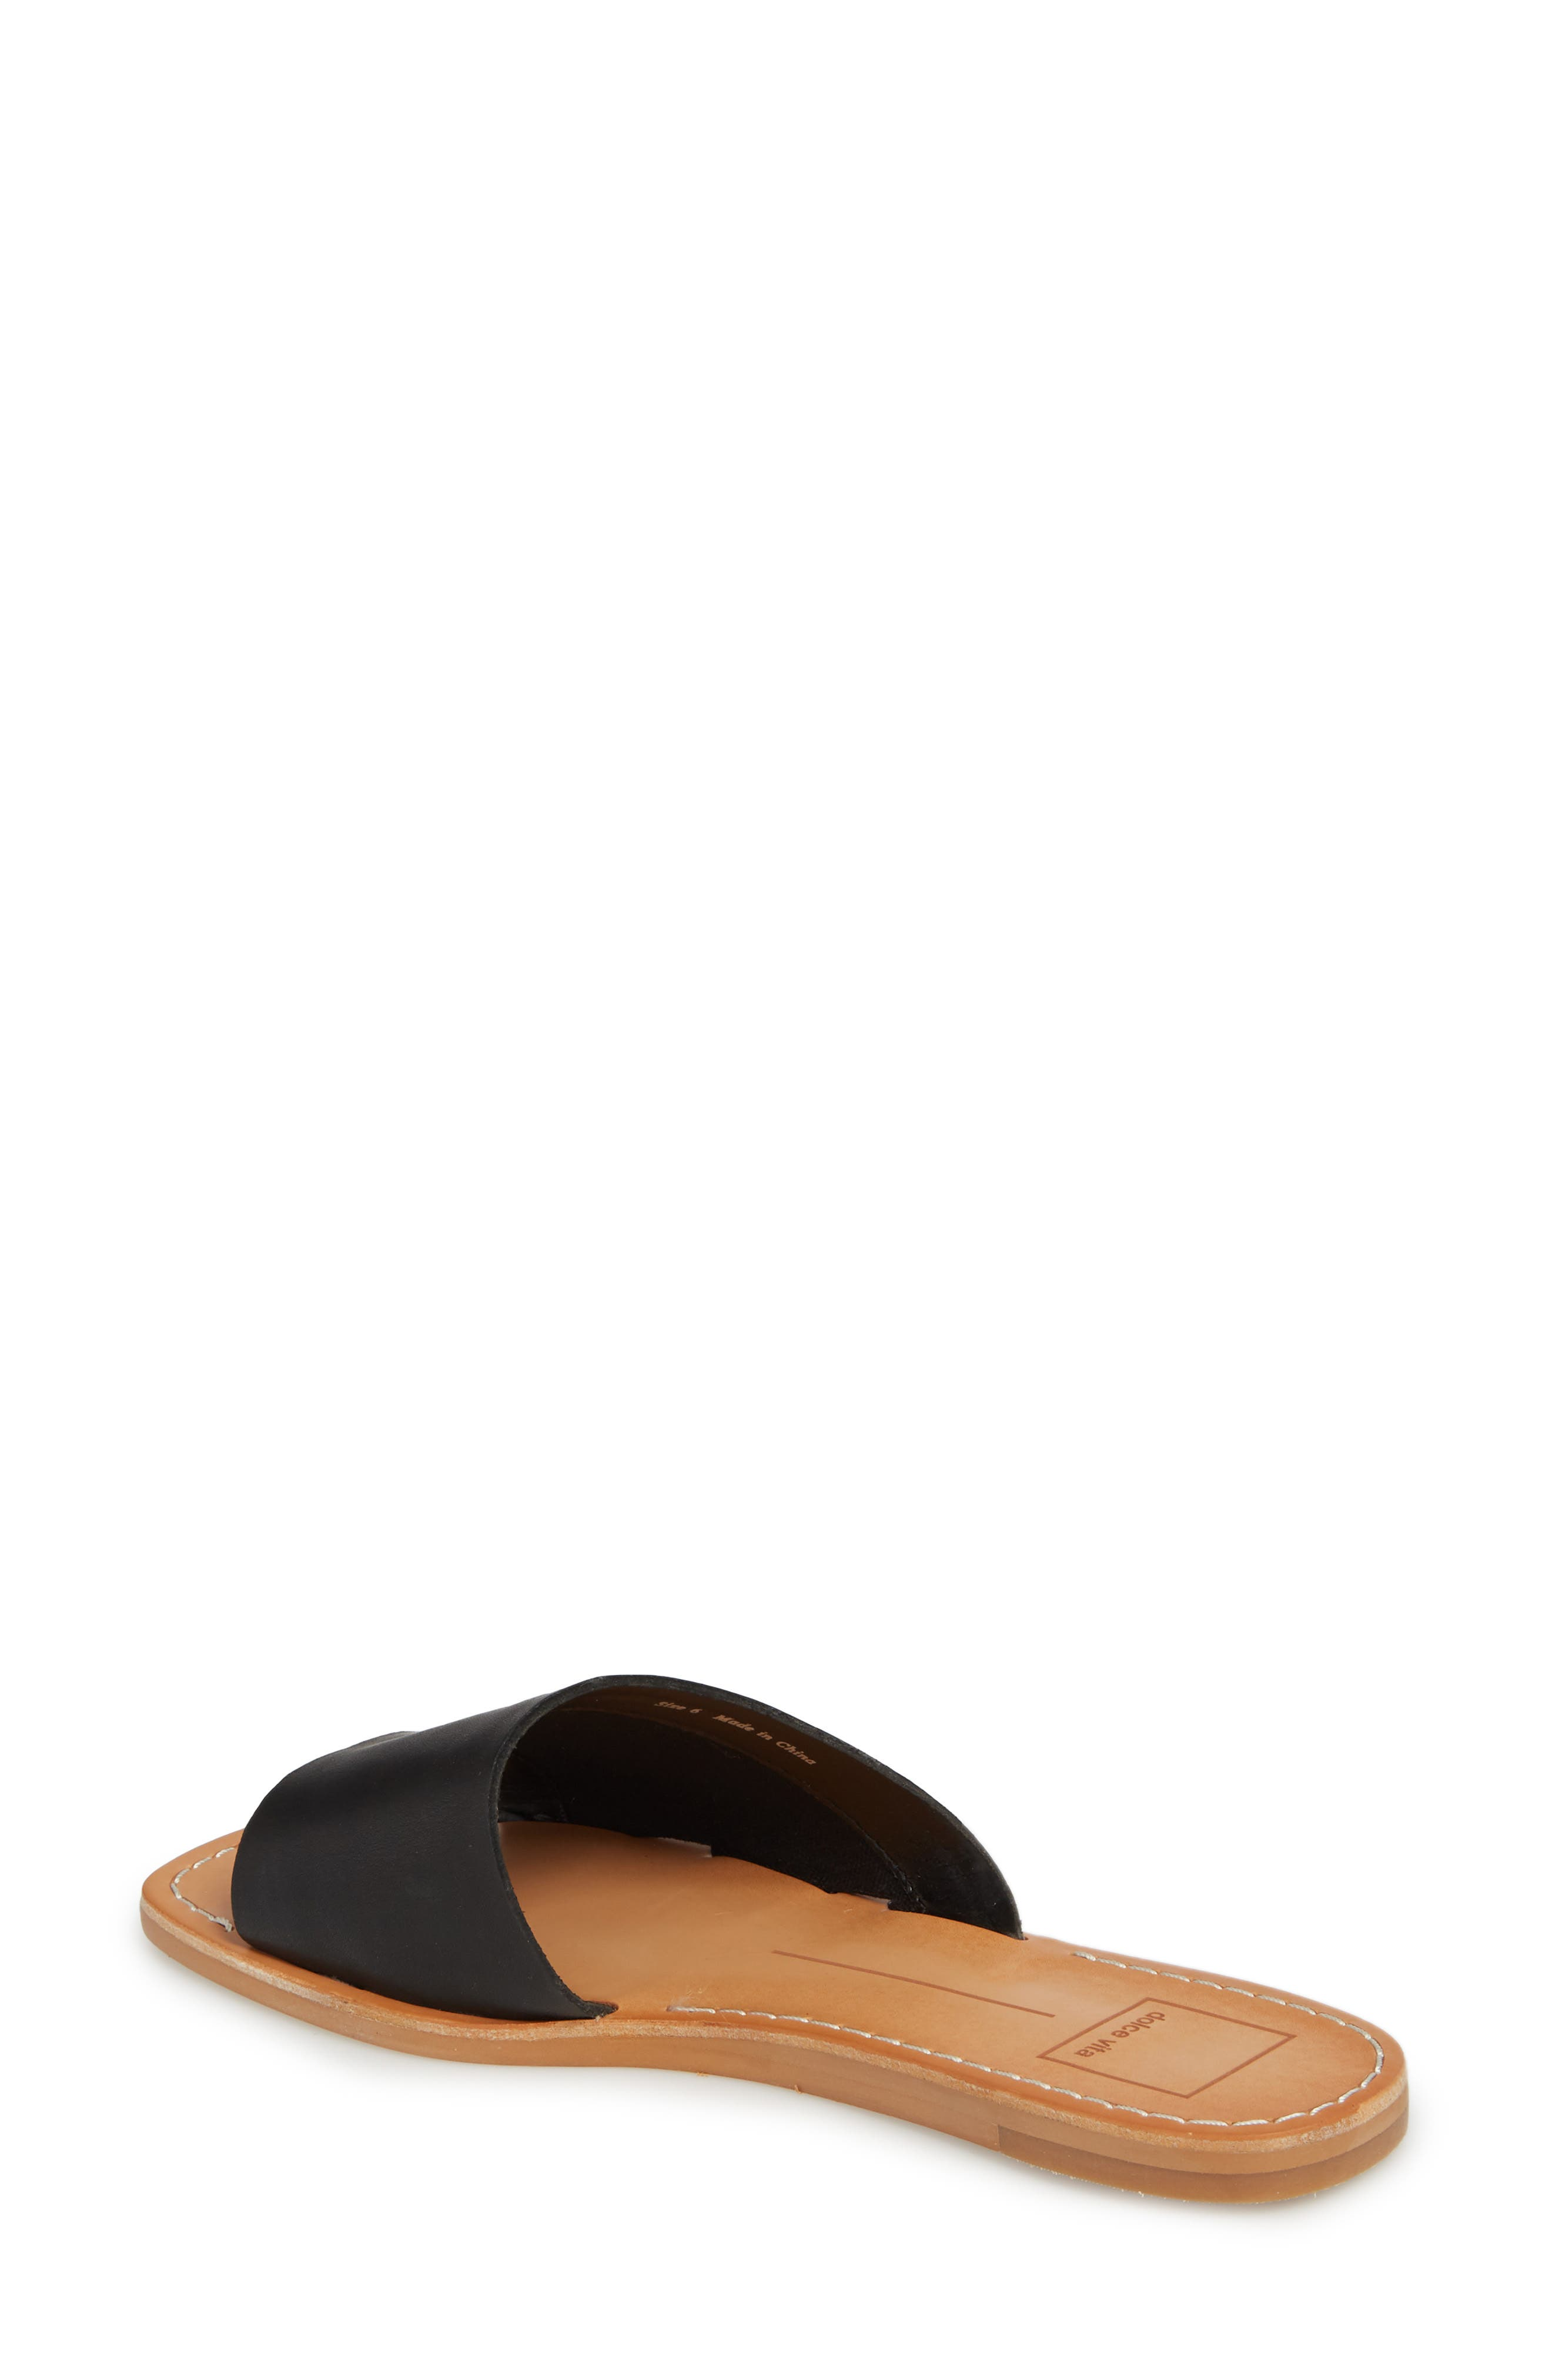 Cato Asymmetrical Slide Sandal,                             Alternate thumbnail 2, color,                             001